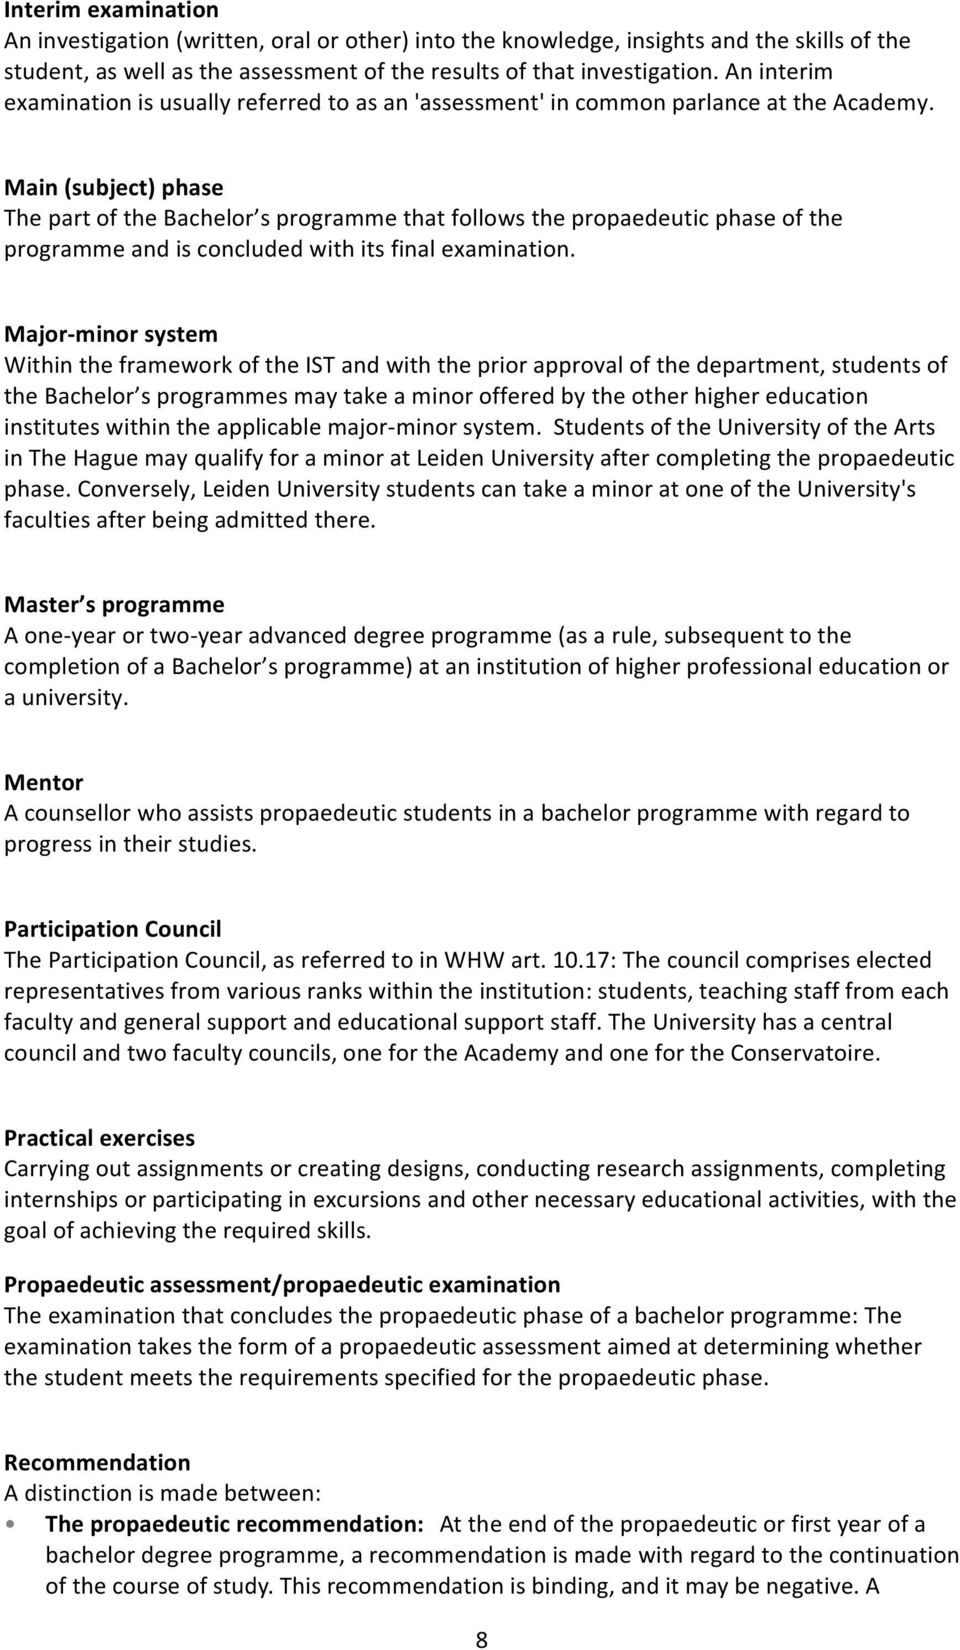 Main (subject) phase The part of the Bachelor s programme that follows the propaedeutic phase of the programme and is concluded with its final examination.